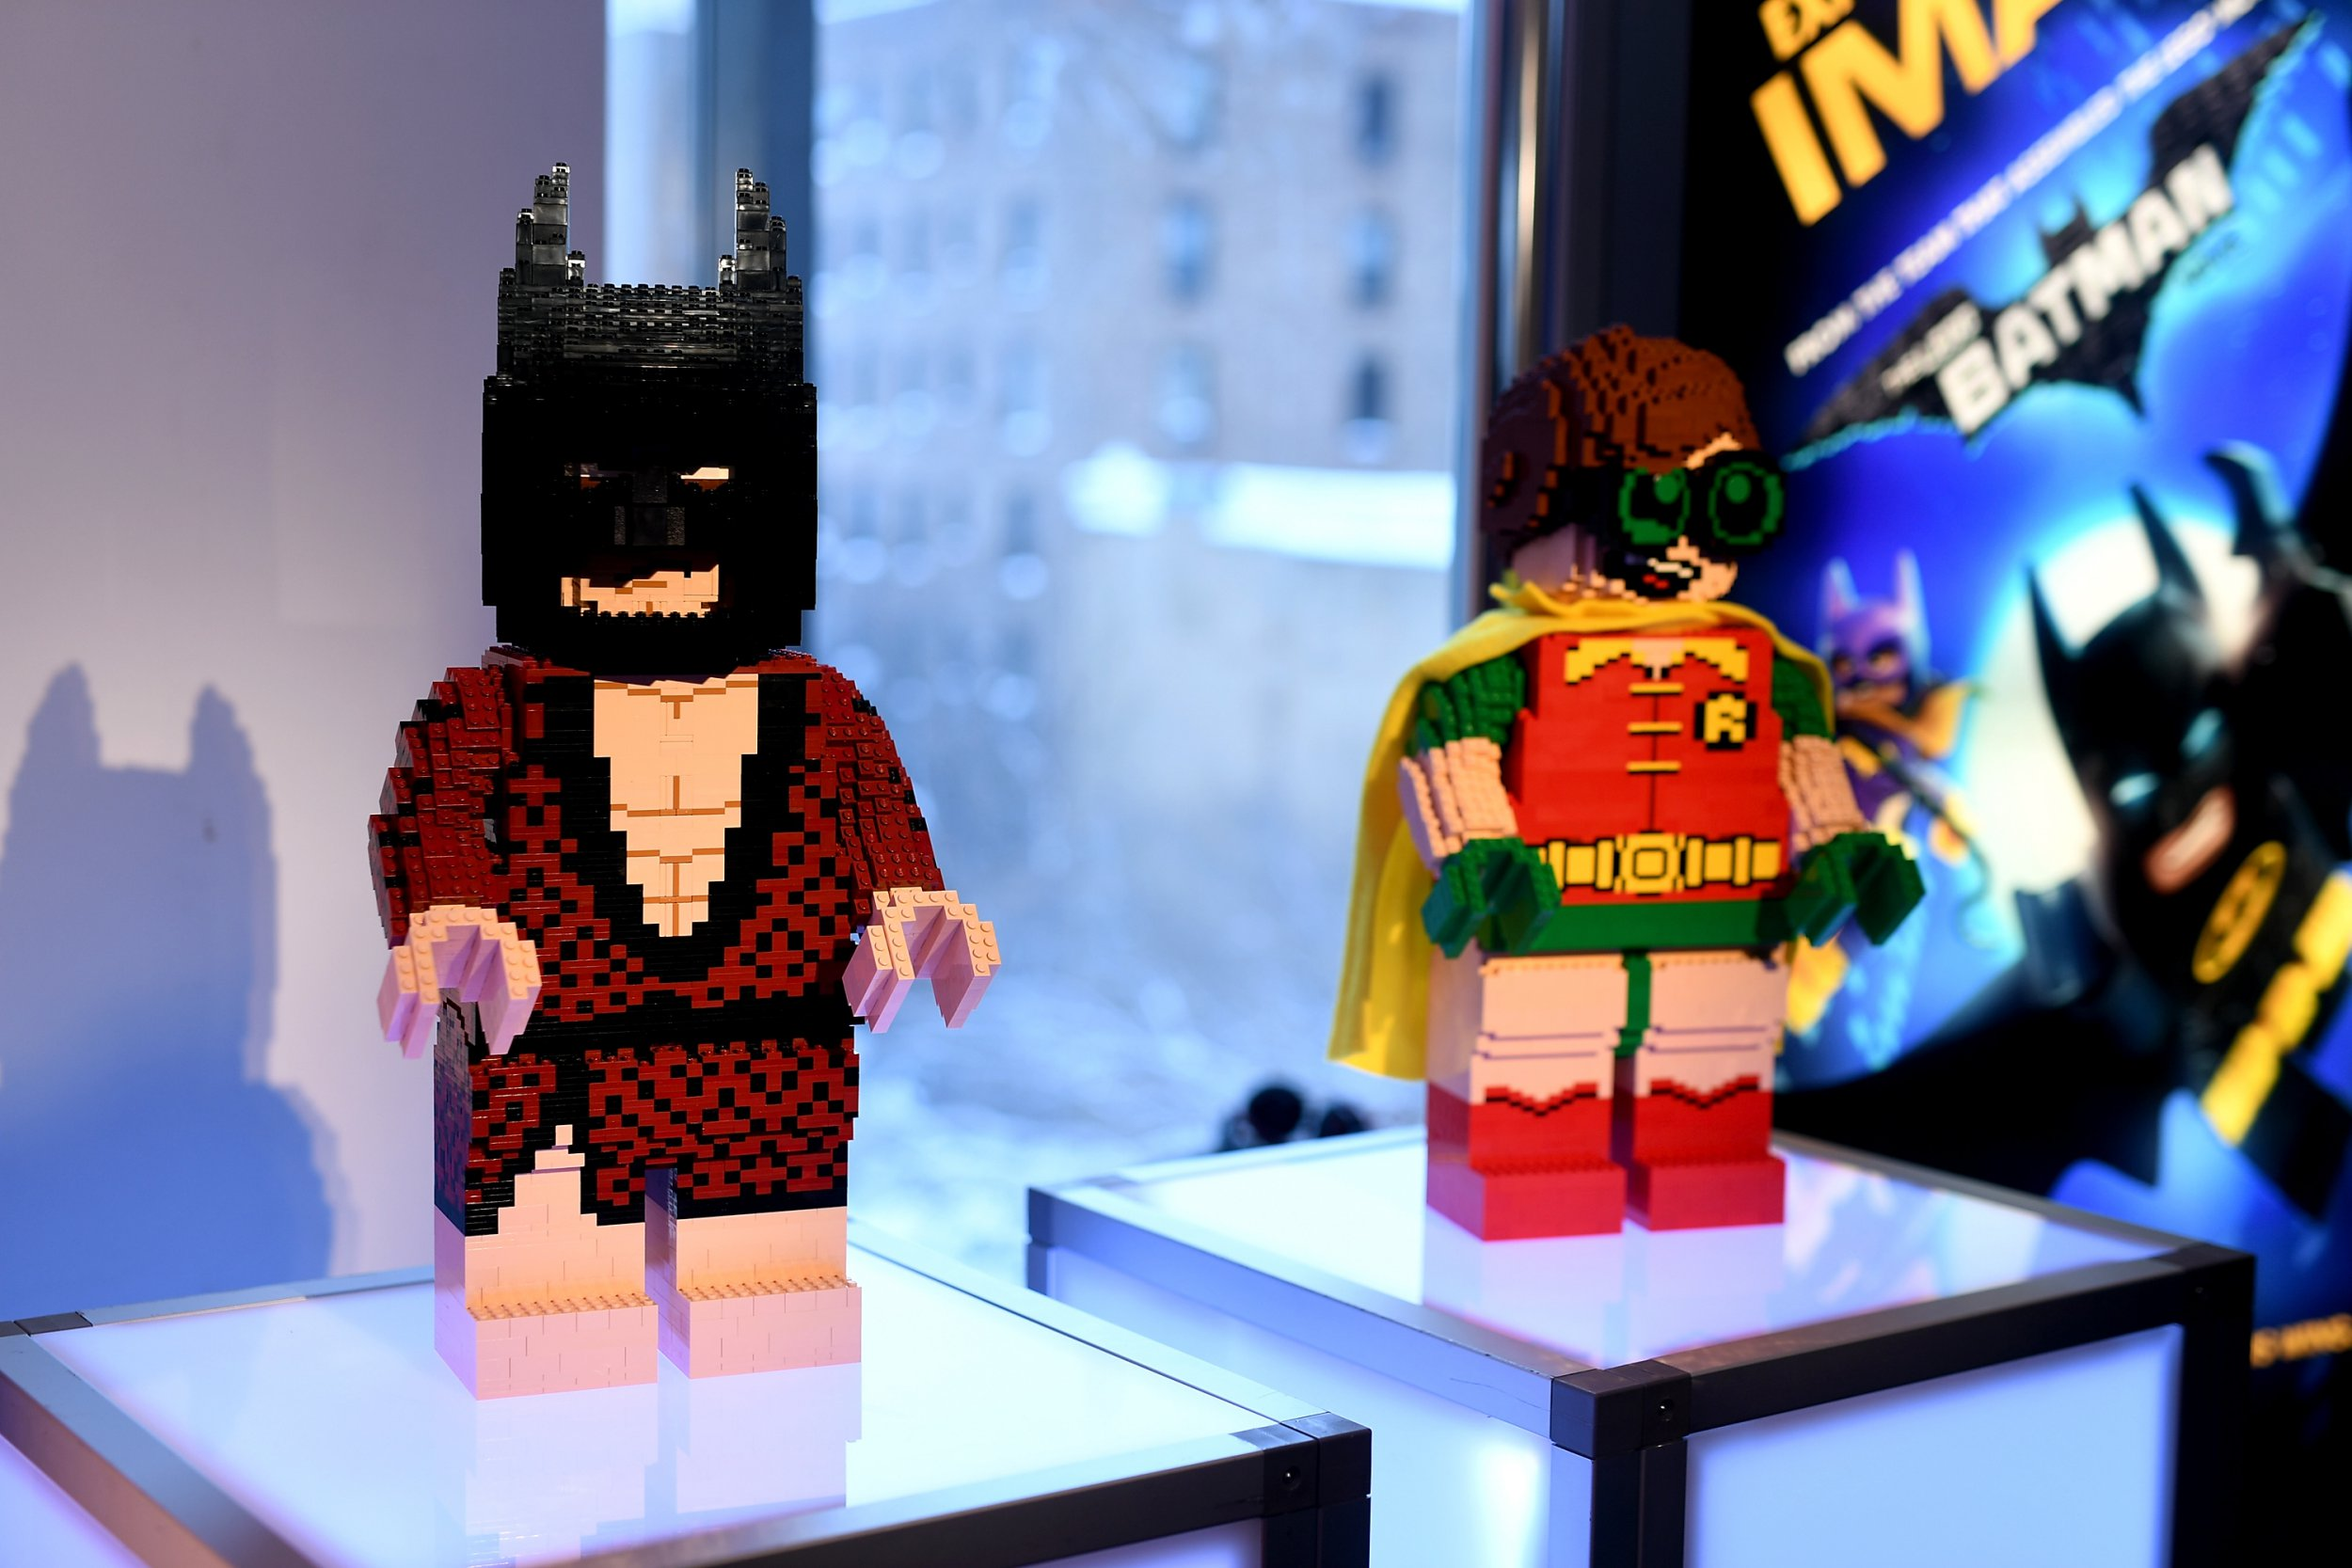 Brisbane Airport is hiring a skilled 'artist in residence' to just play with Lego all day